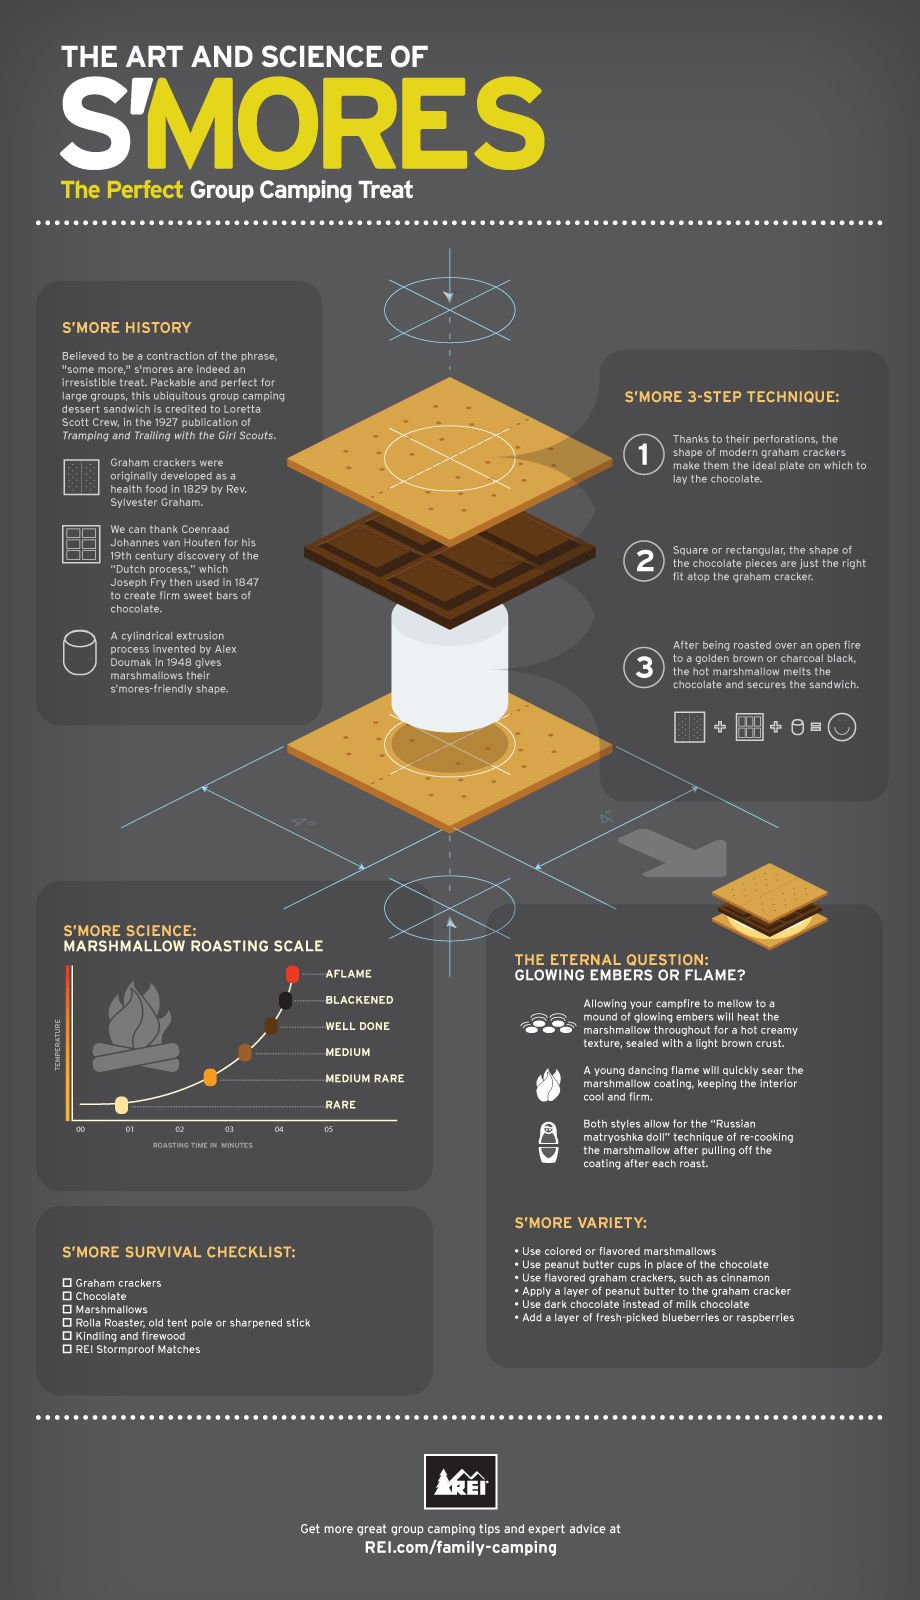 03 The Art and Science of Smores (Infographic)